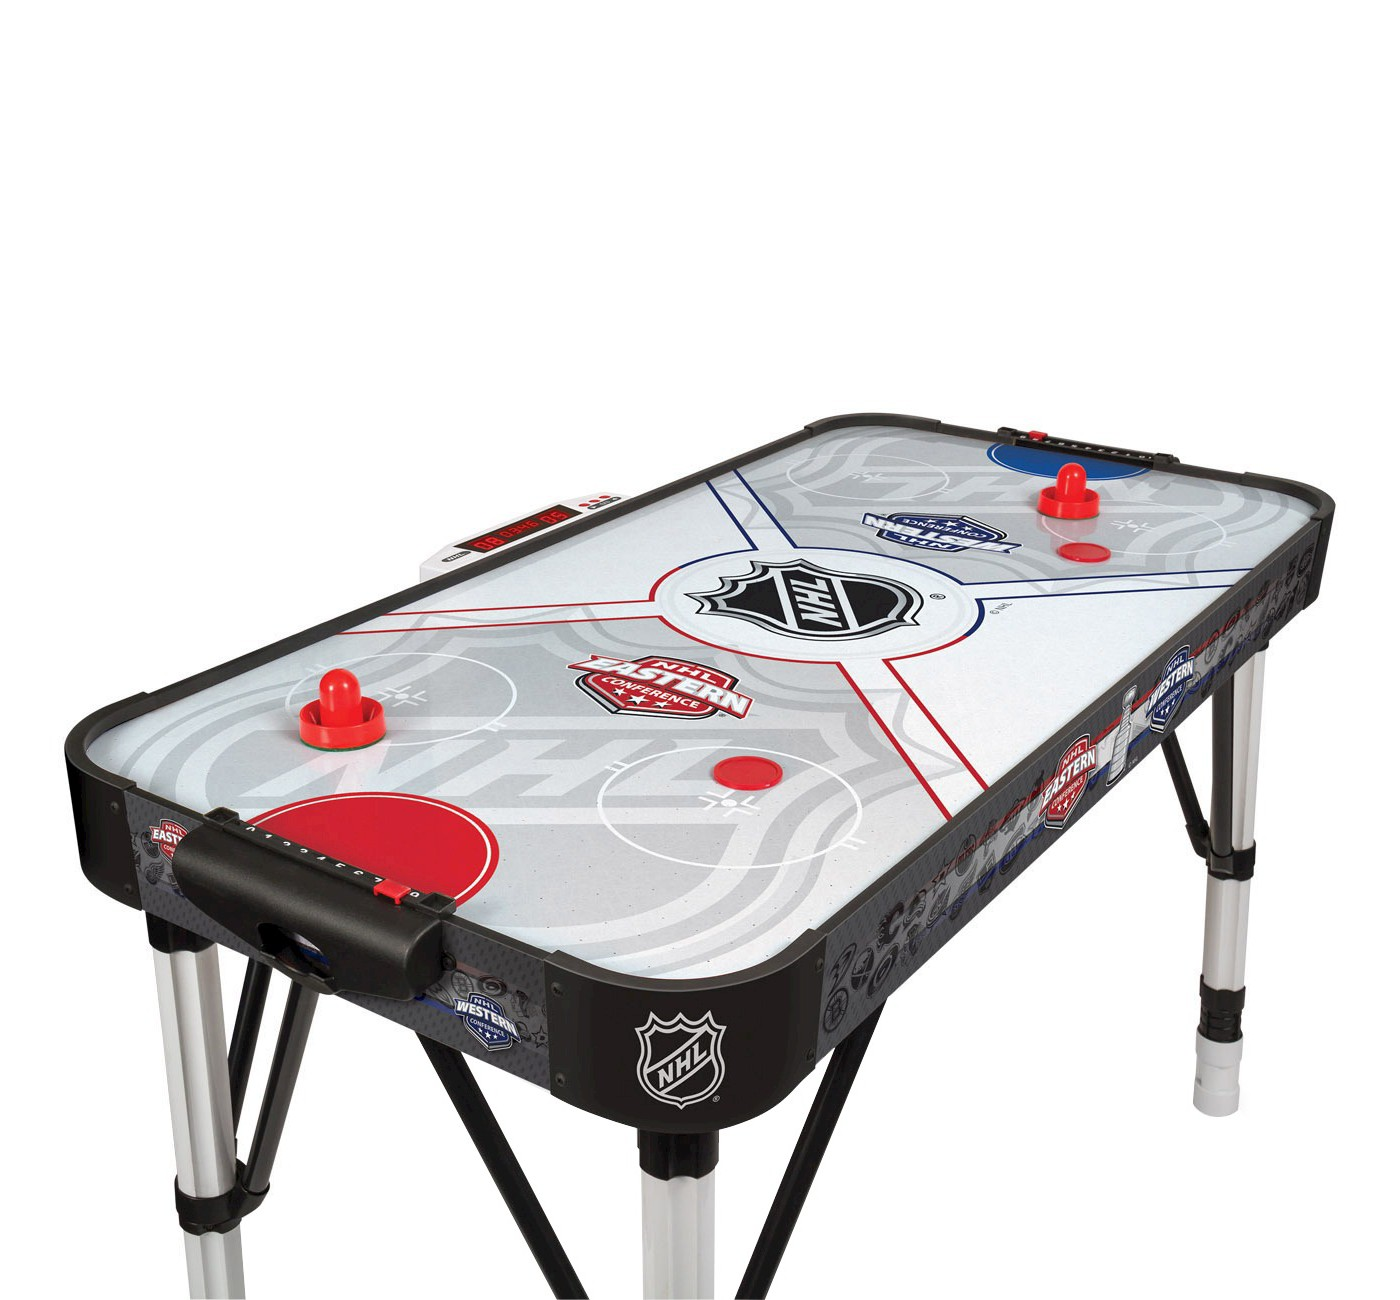 Save 35% on NHL REC-TEK 4' Adjust & Store Hover Hockey Table